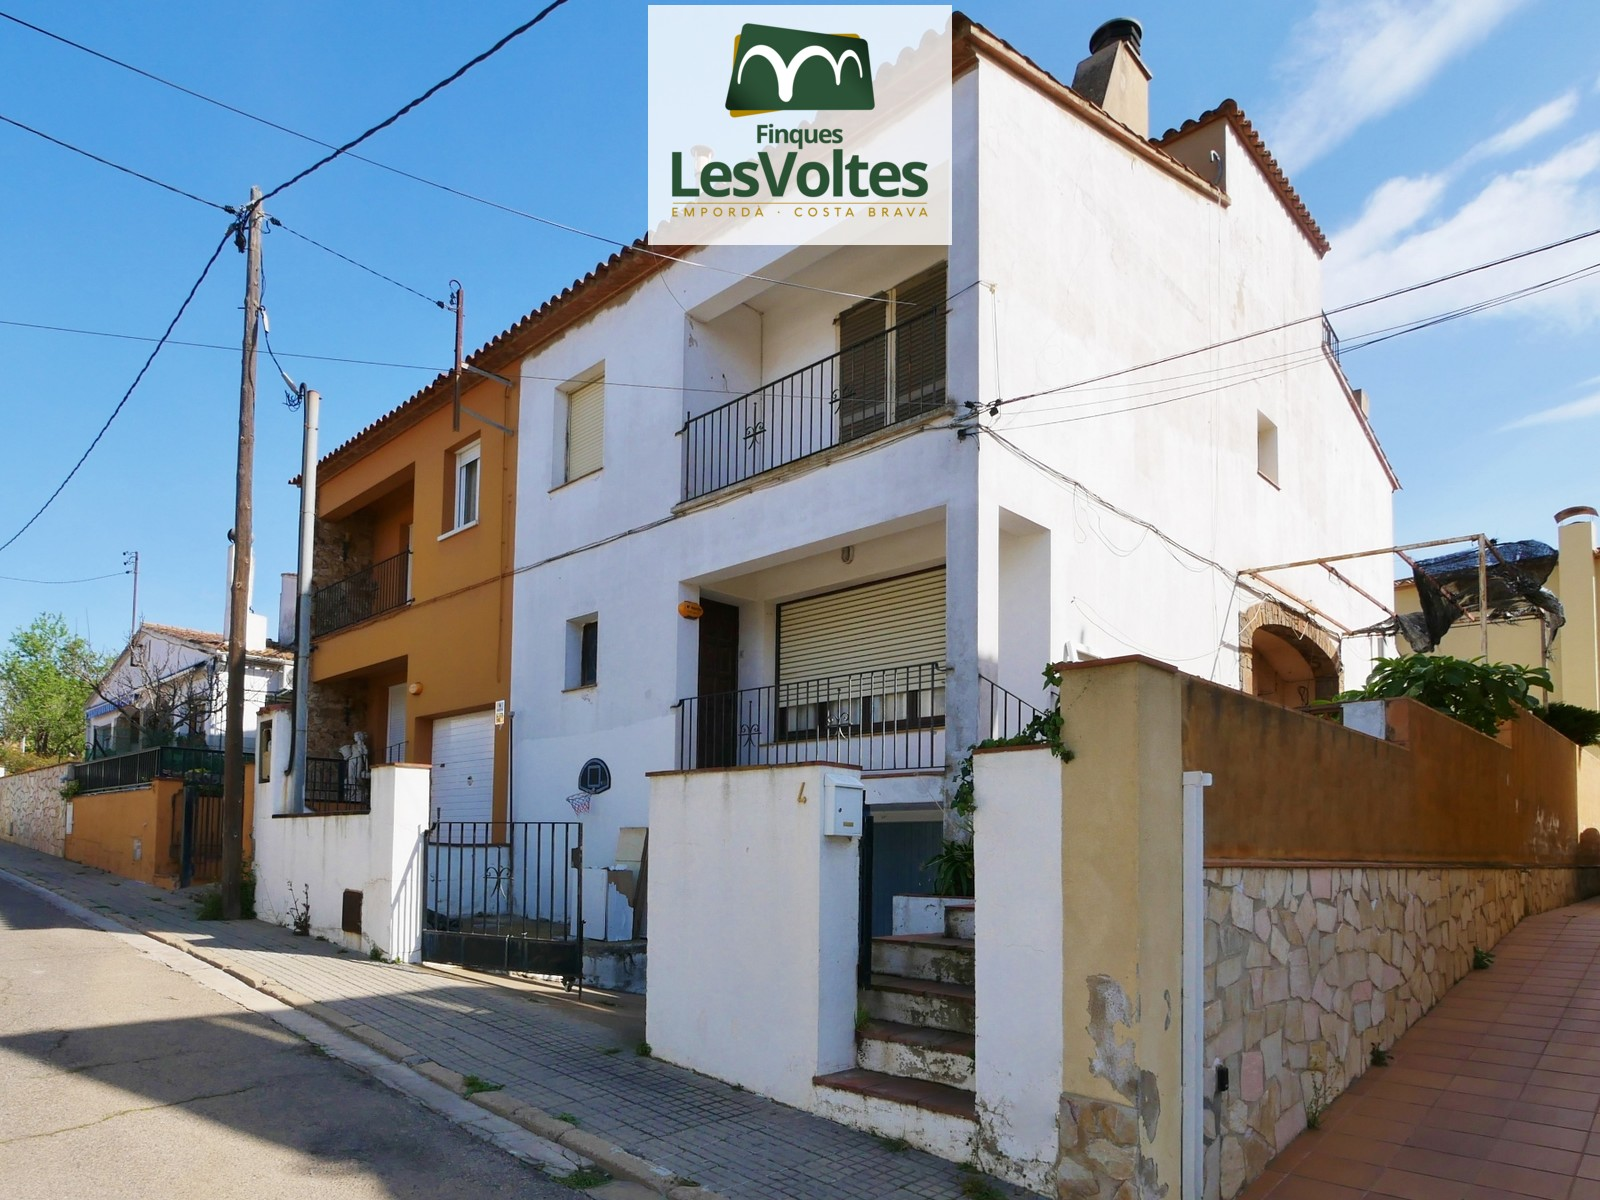 HOUSE OF 4 BEDROOMS LOCATED IN A QUIET RESIDENTIAL AREA OF PALAFRUGELL. BRUGUEROL AREA